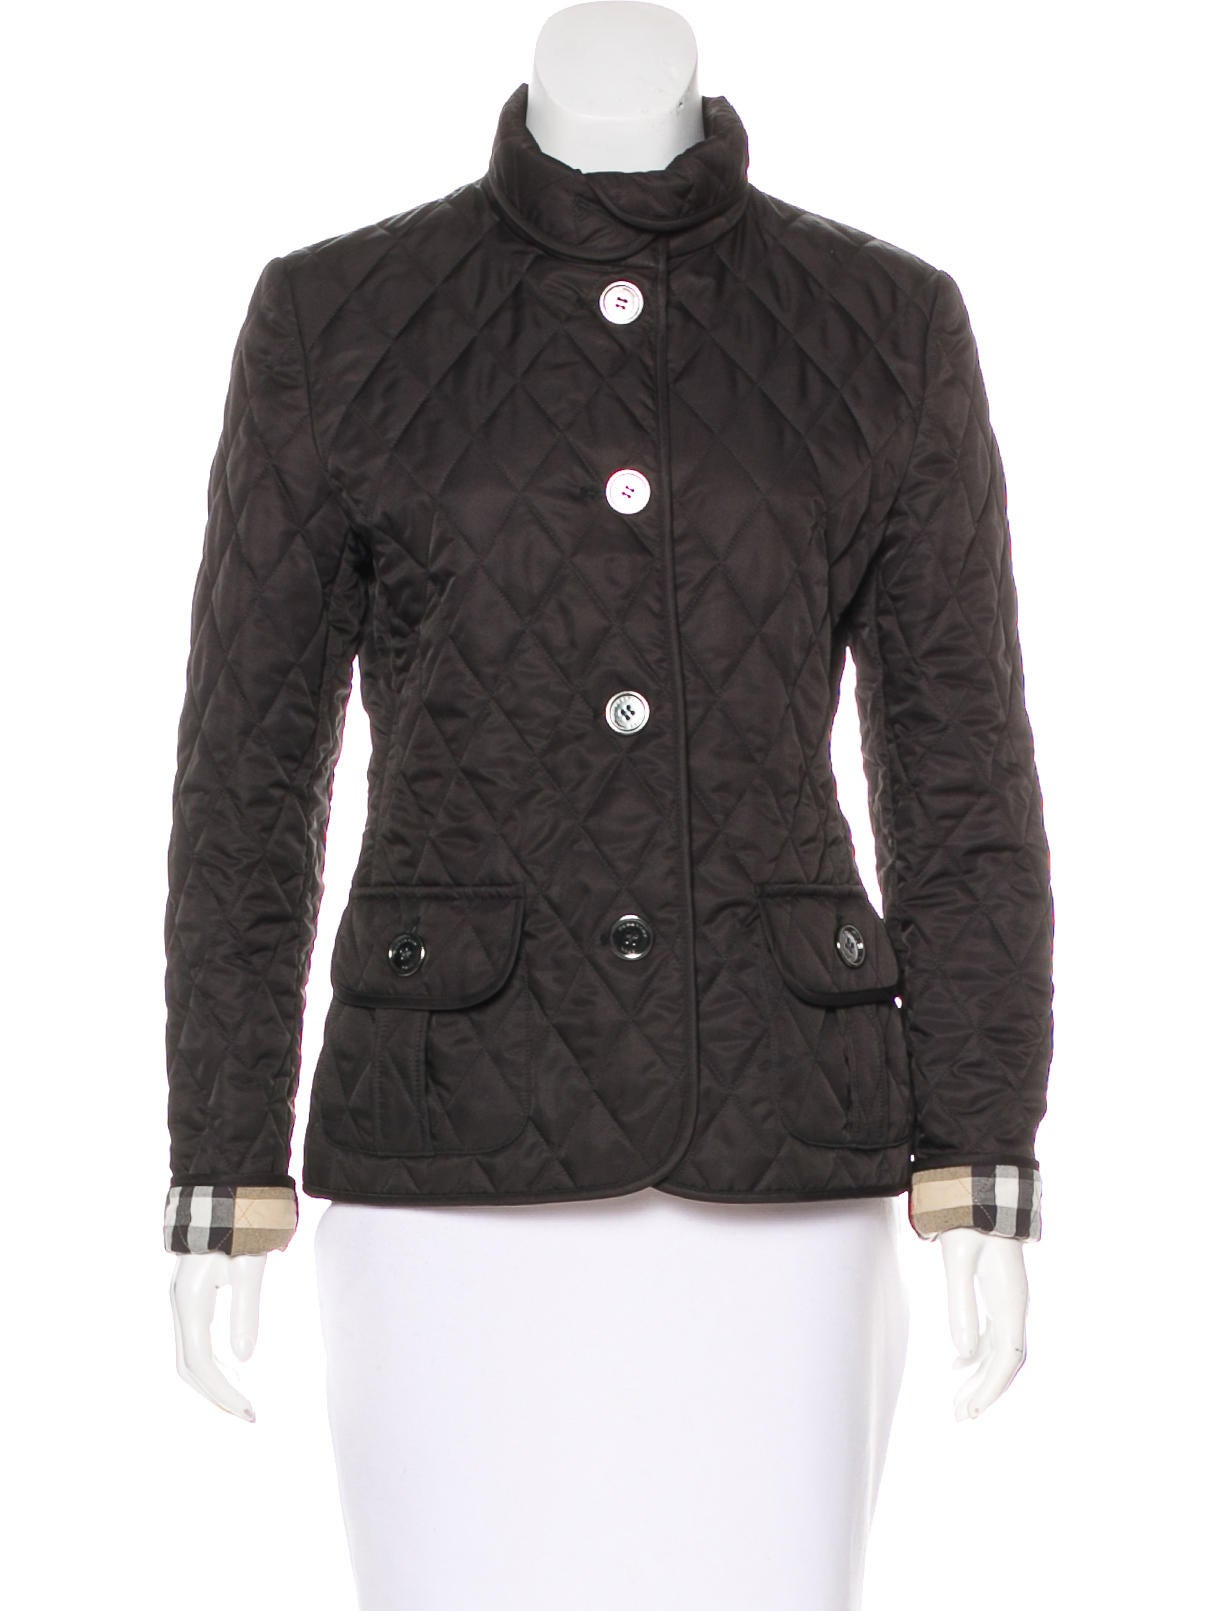 Burberry Brit Quilted Casual Jacket - Clothing